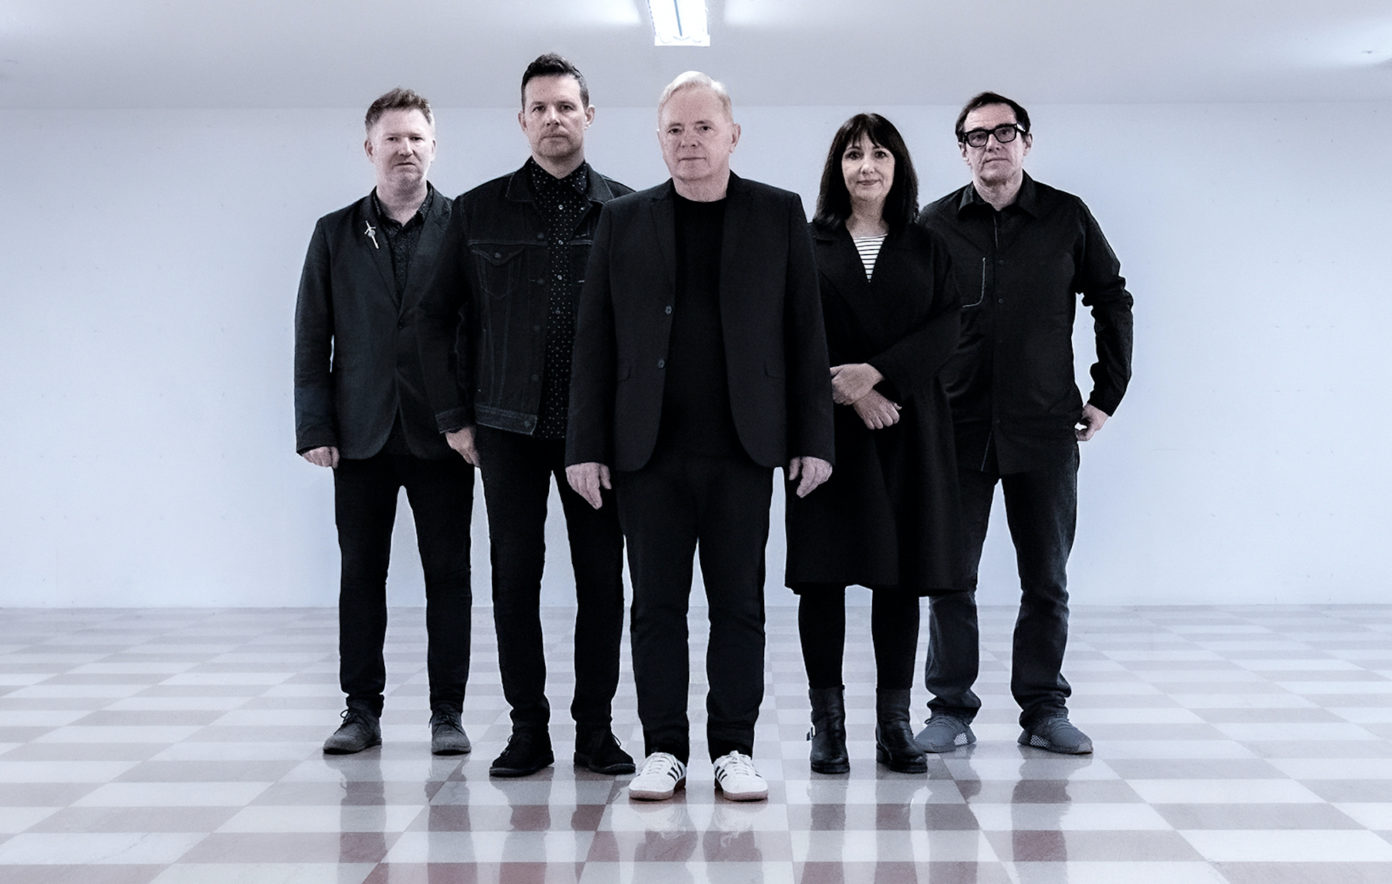 New Order Announce They Will Live-Stream Upcoming London 02 Gig